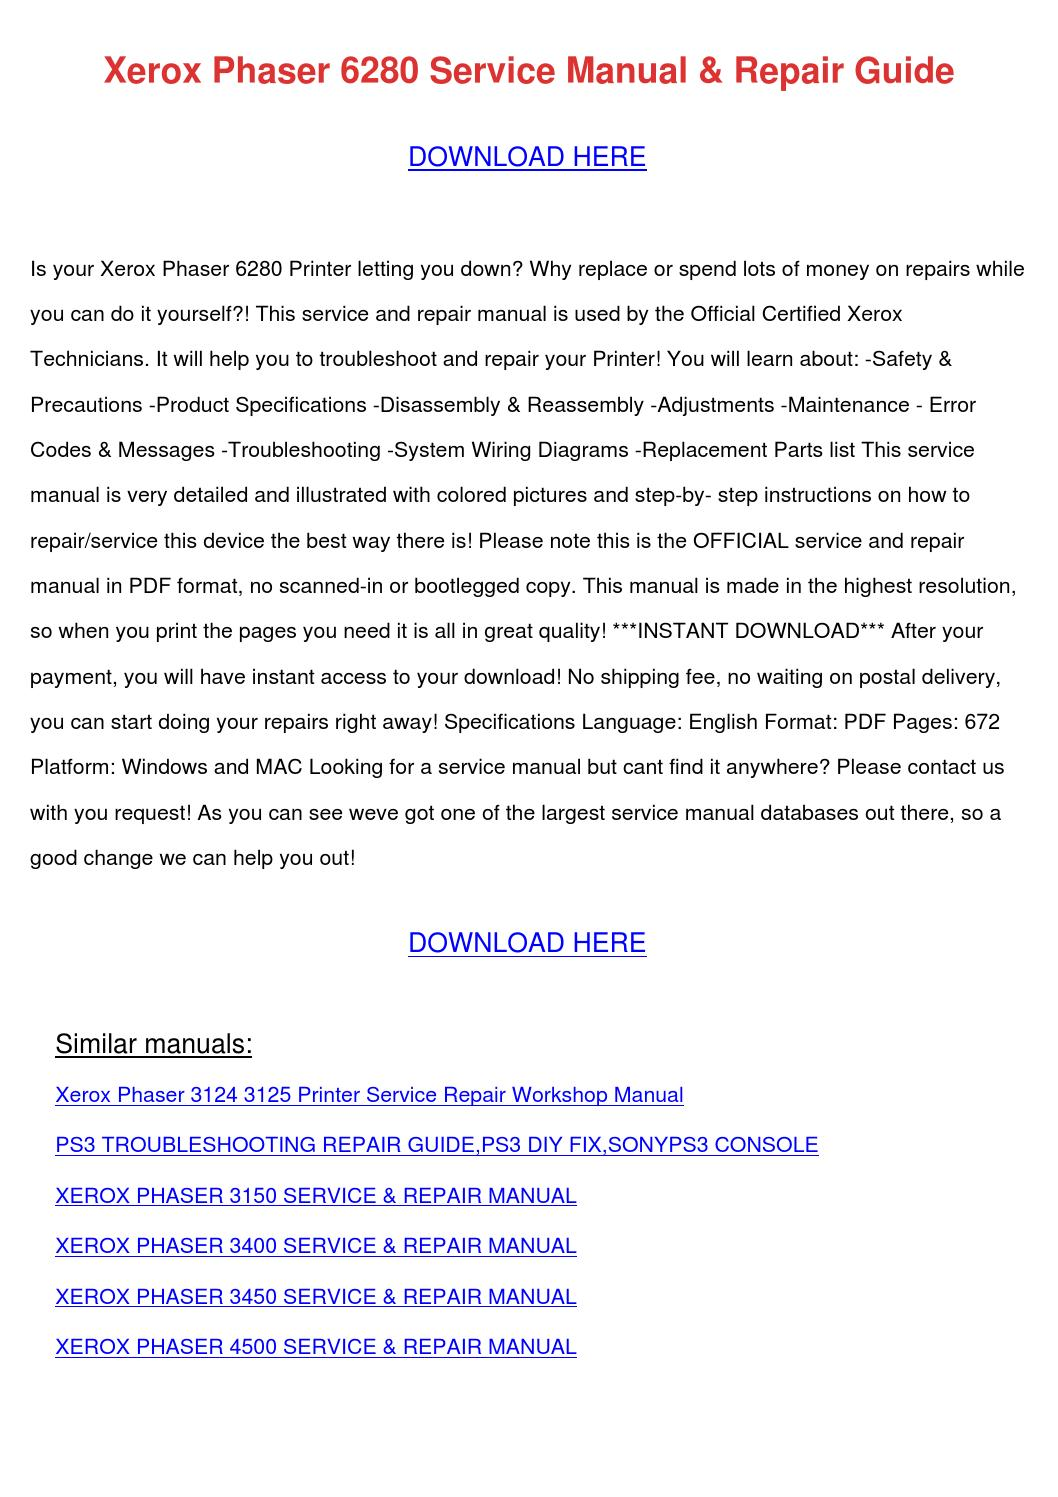 Ps3 Parts Manual Sump Pump Wiring Diagram Float Switch Hecho Playstation Models Array Xerox Phaser 6280 Service Repair Guide By Barbaraandre Issuu Rh